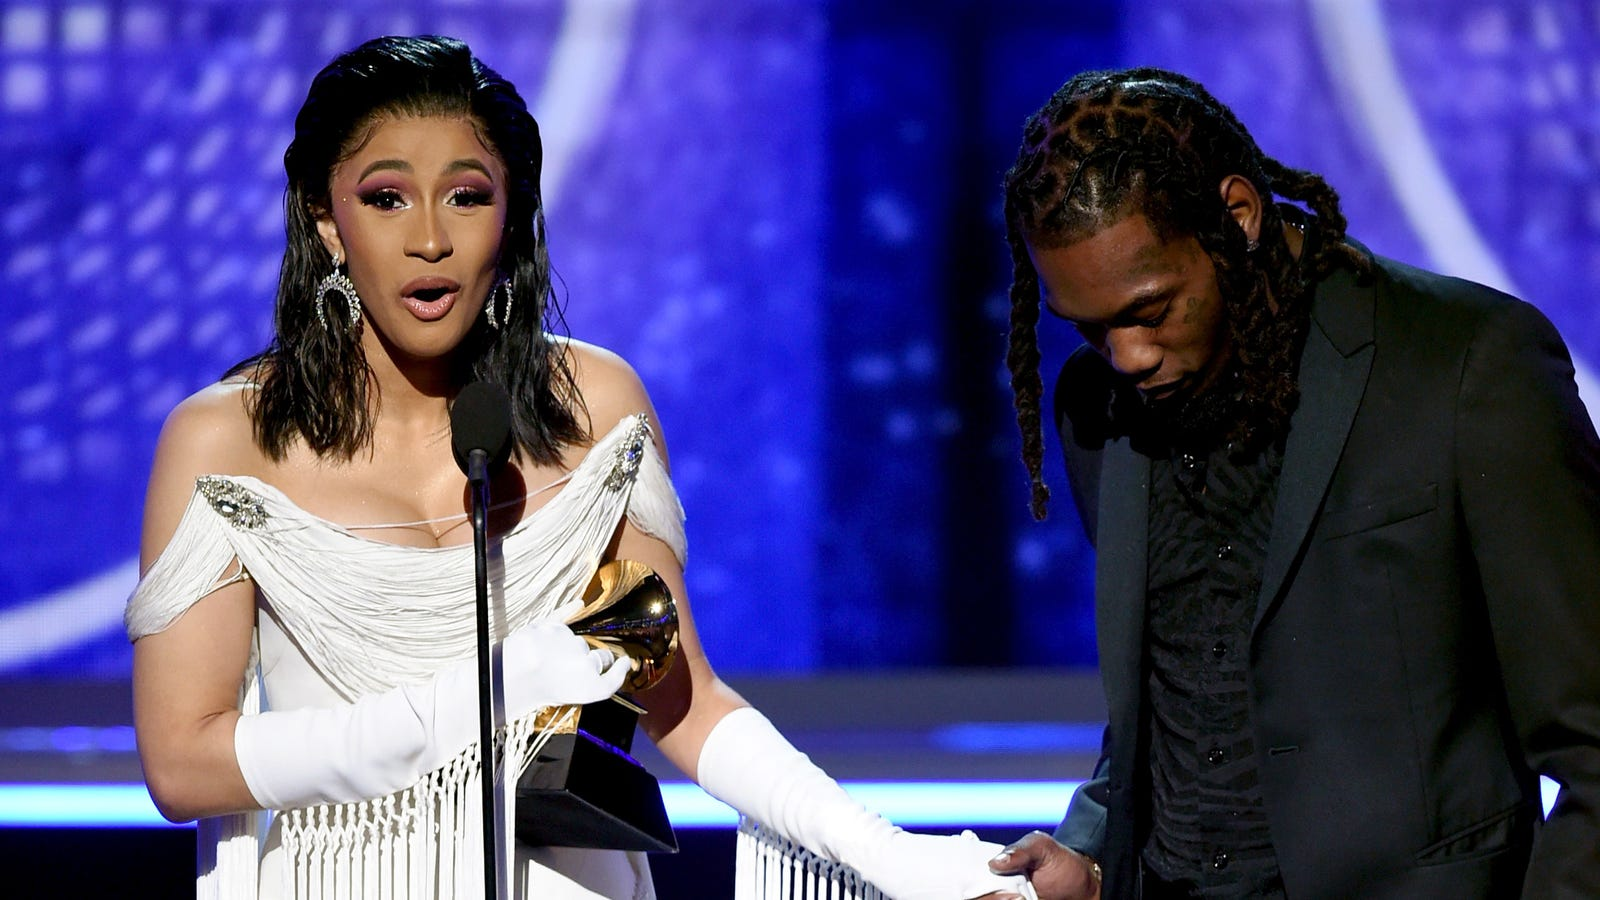 Cardi B Is the First Woman to Win the Grammy for Best Rap Album